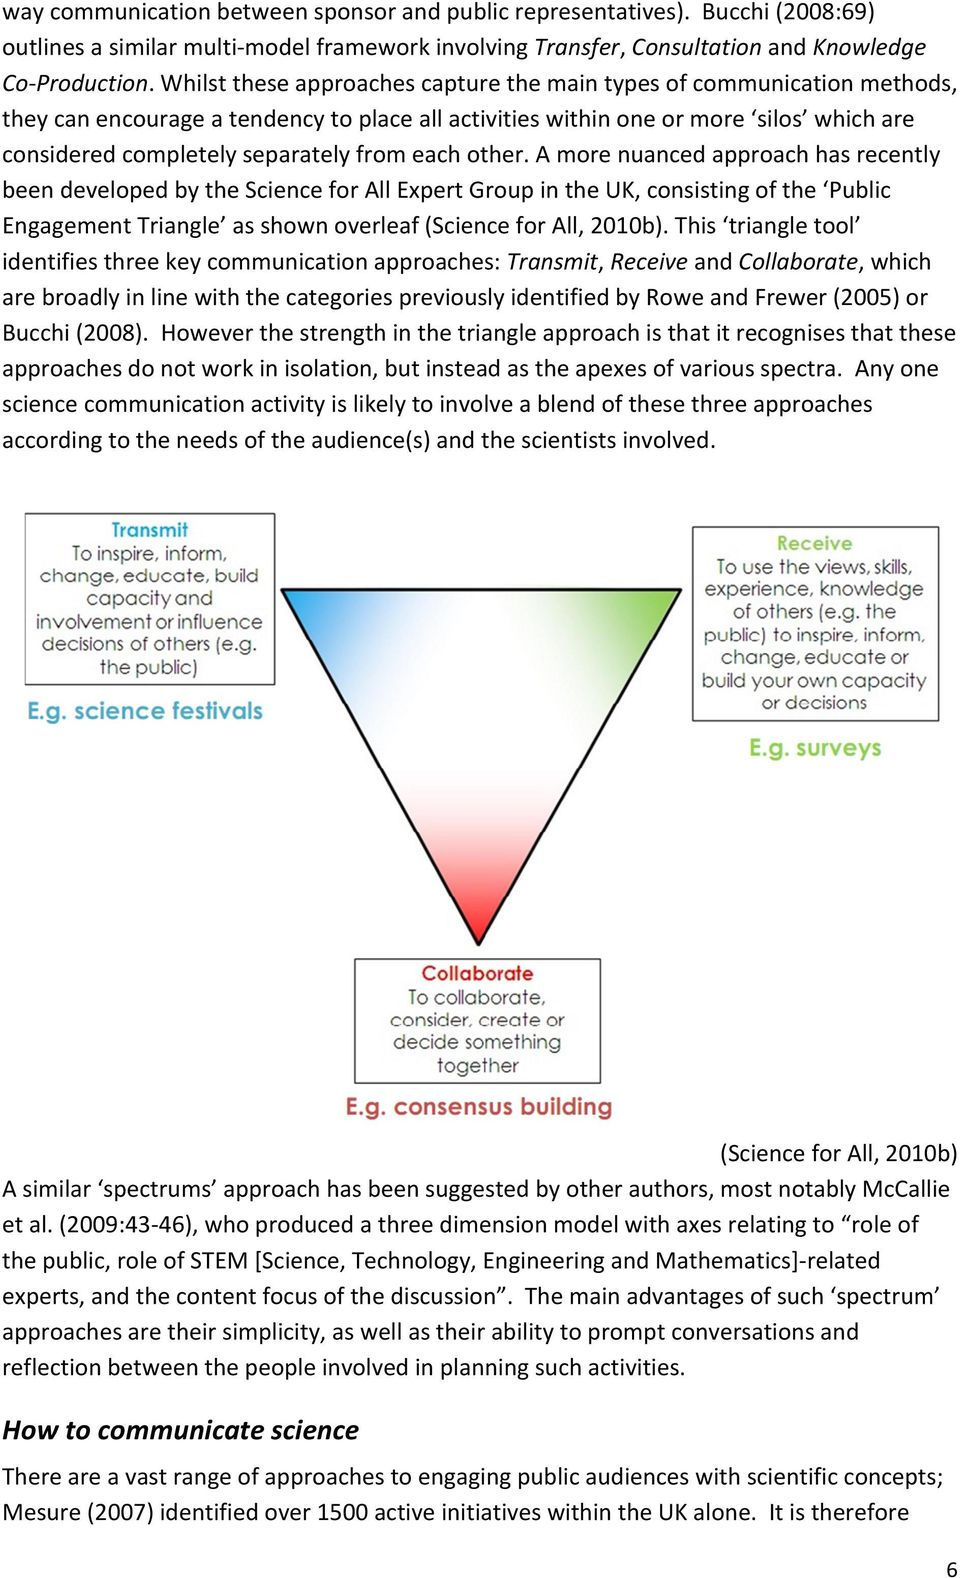 each other. A more nuanced approach has recently been developed by the Science for All Expert Group in the UK, consisting of the Public Engagement Triangle as shown overleaf (Science for All, 2010b).